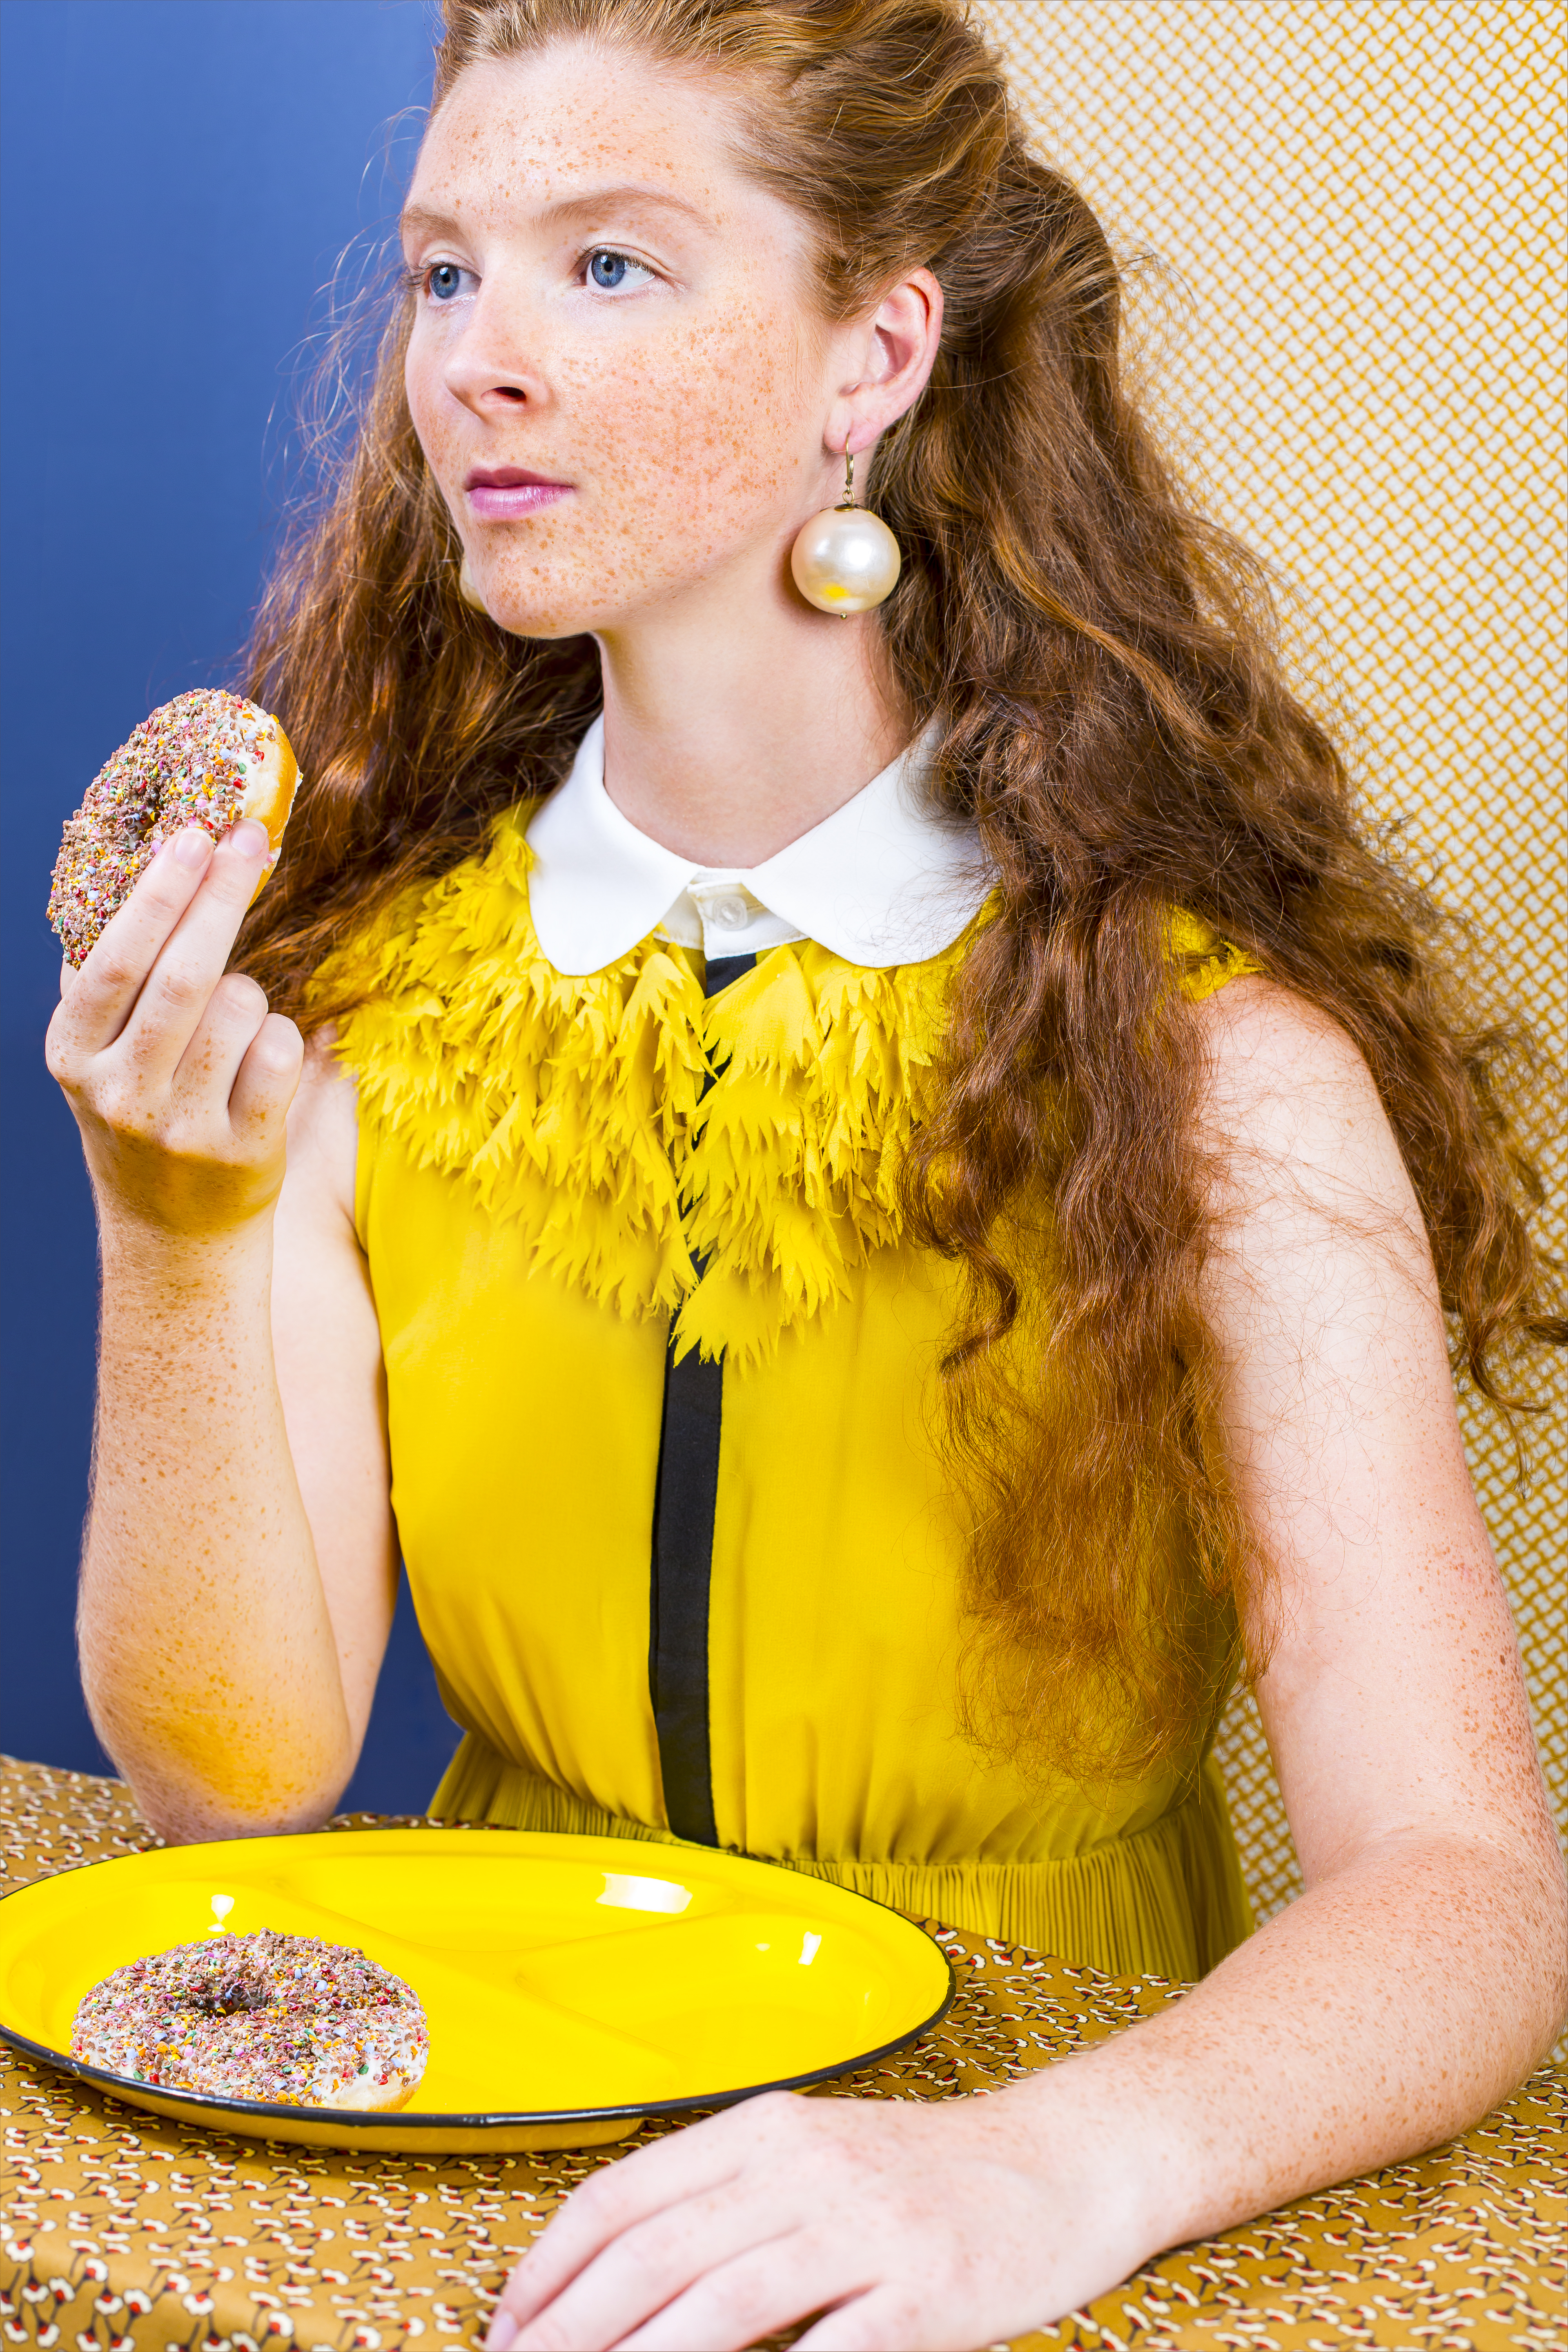 The Girl and the donut